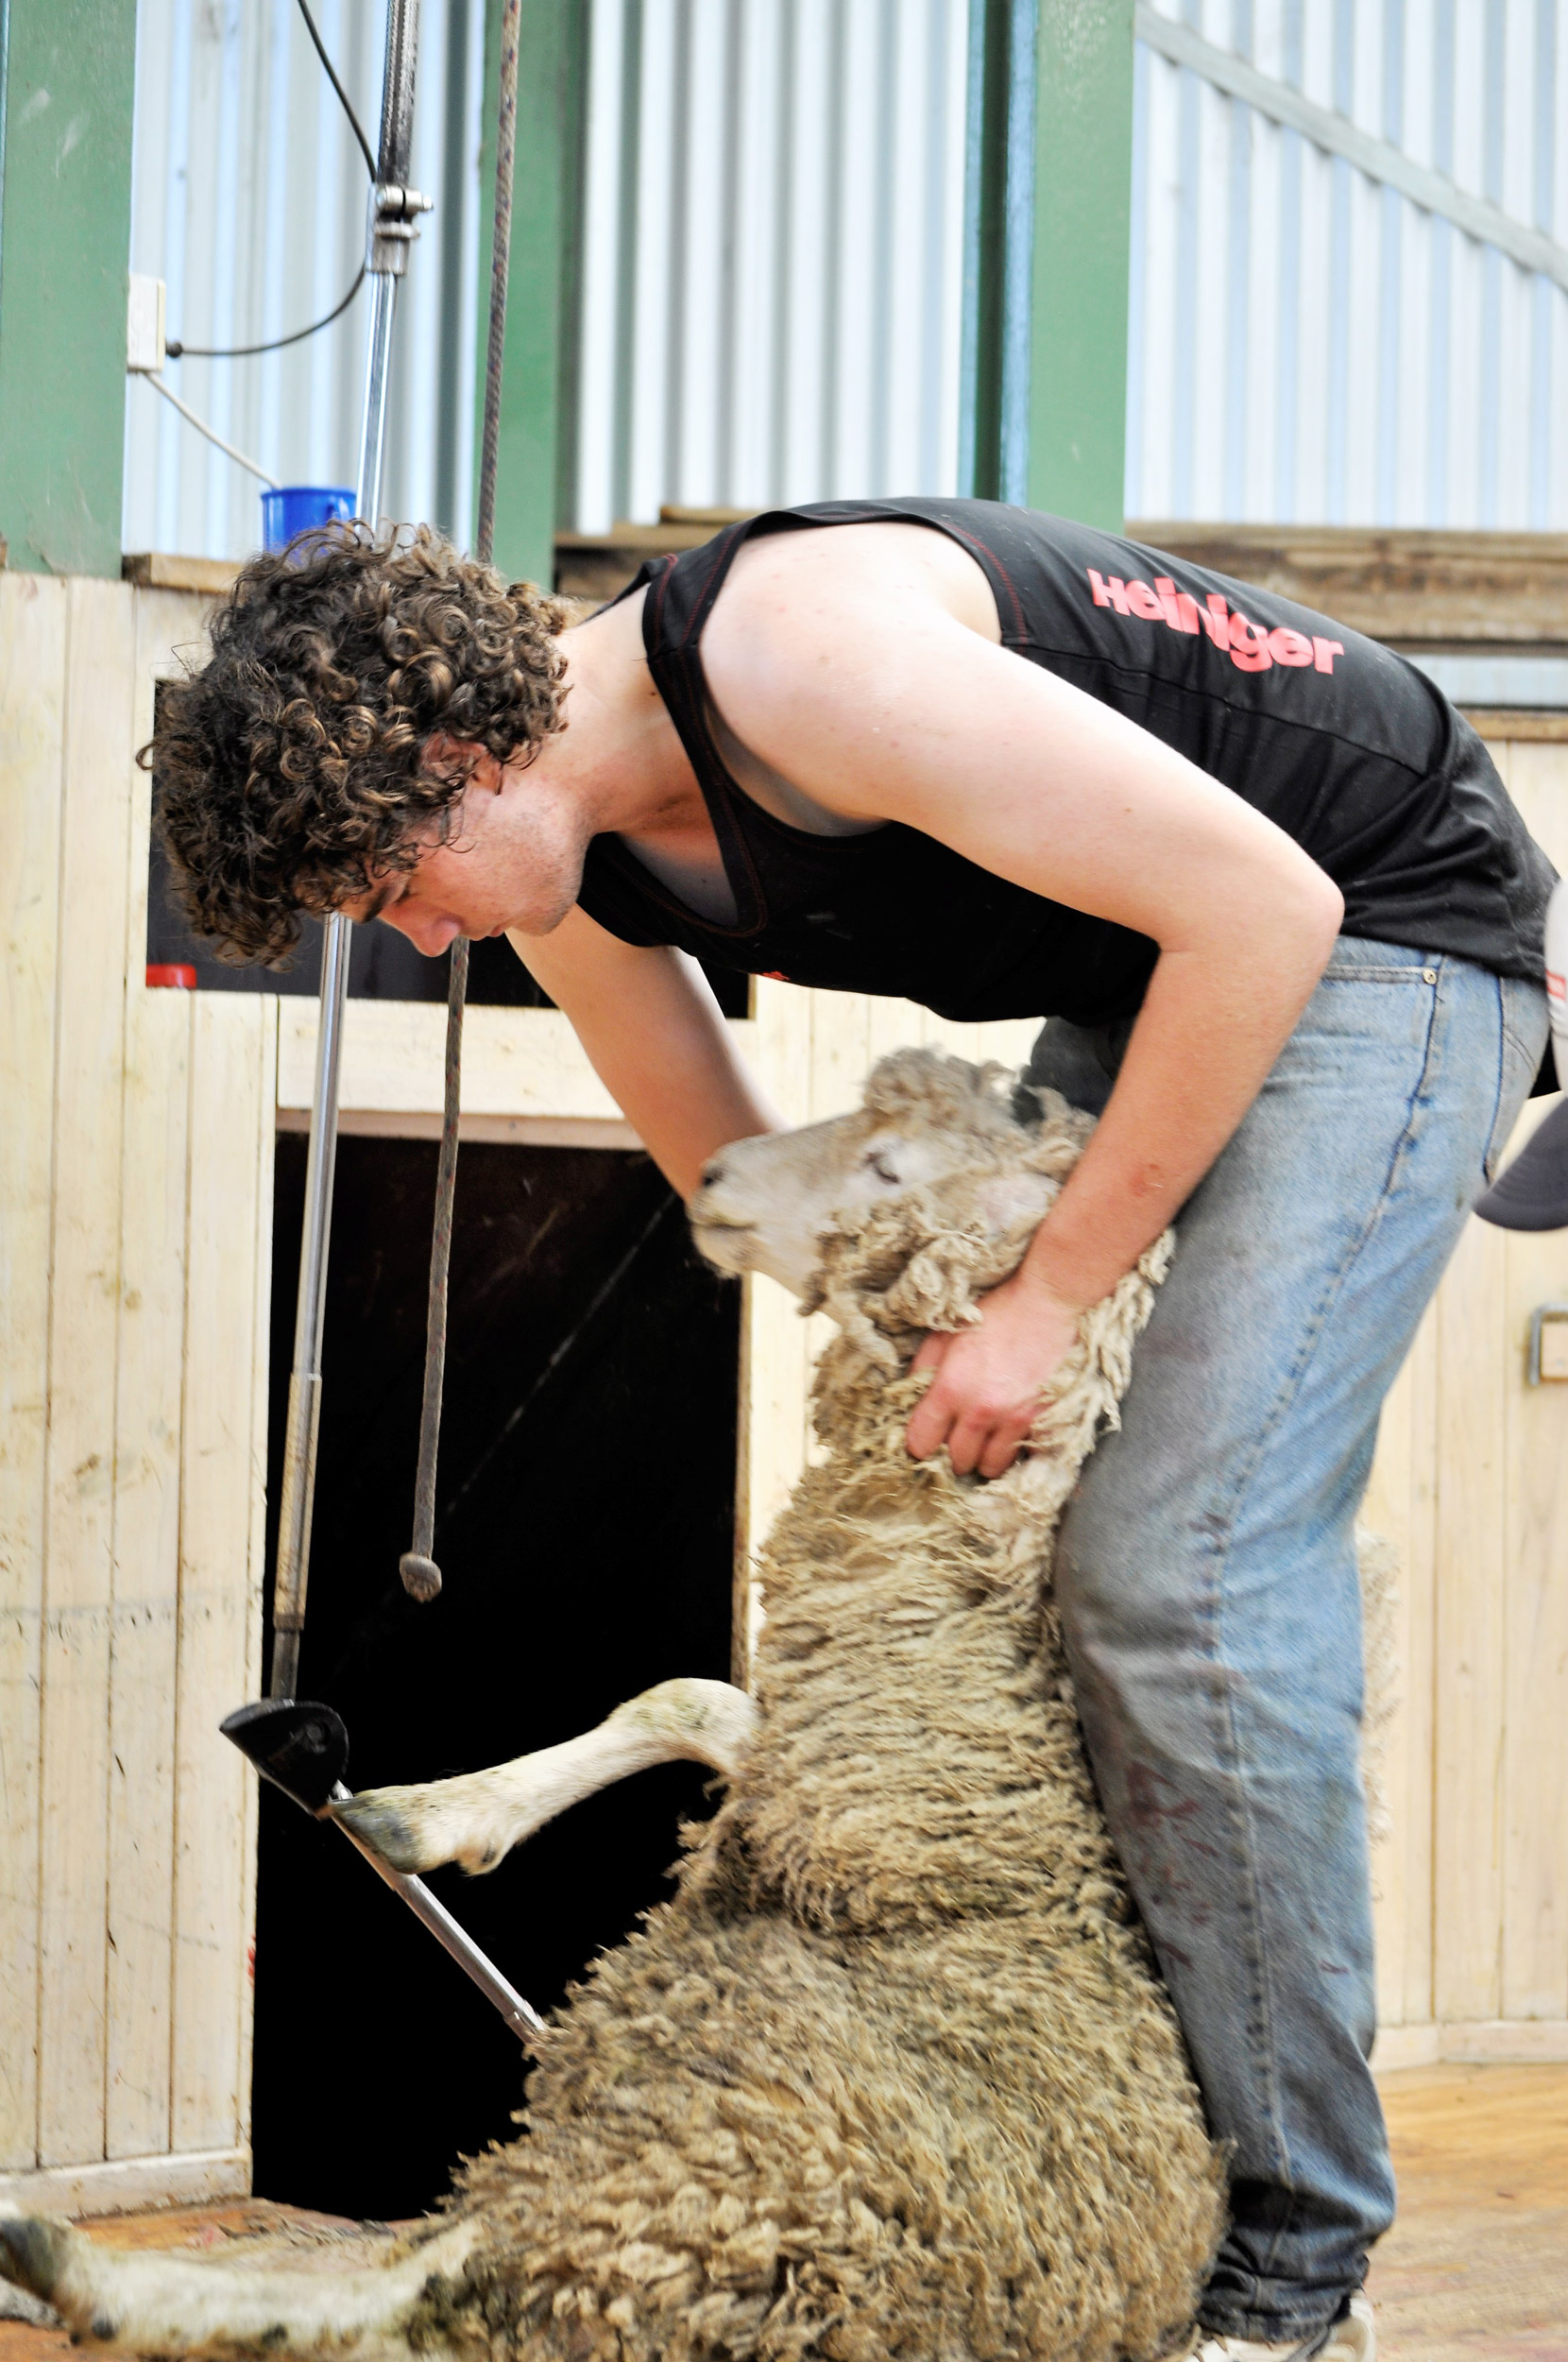 rist-agricultural-collegeshearing-01.jpg